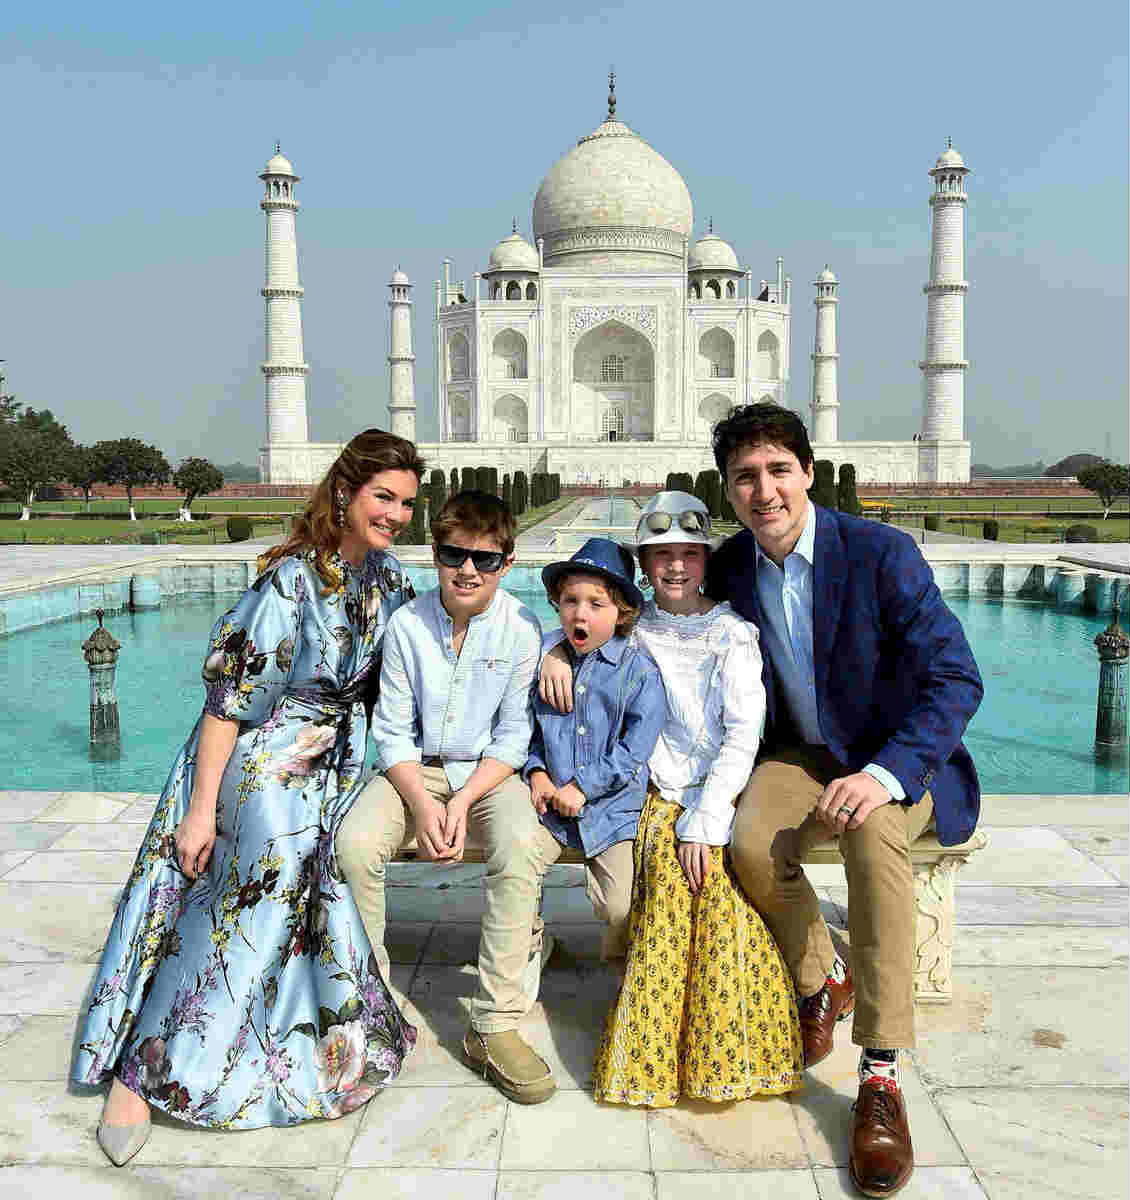 Justin Trudeau Prime Minister Of Canada Poses For A: These Pictures Prove Justin Trudeau Binge Watched Sooraj